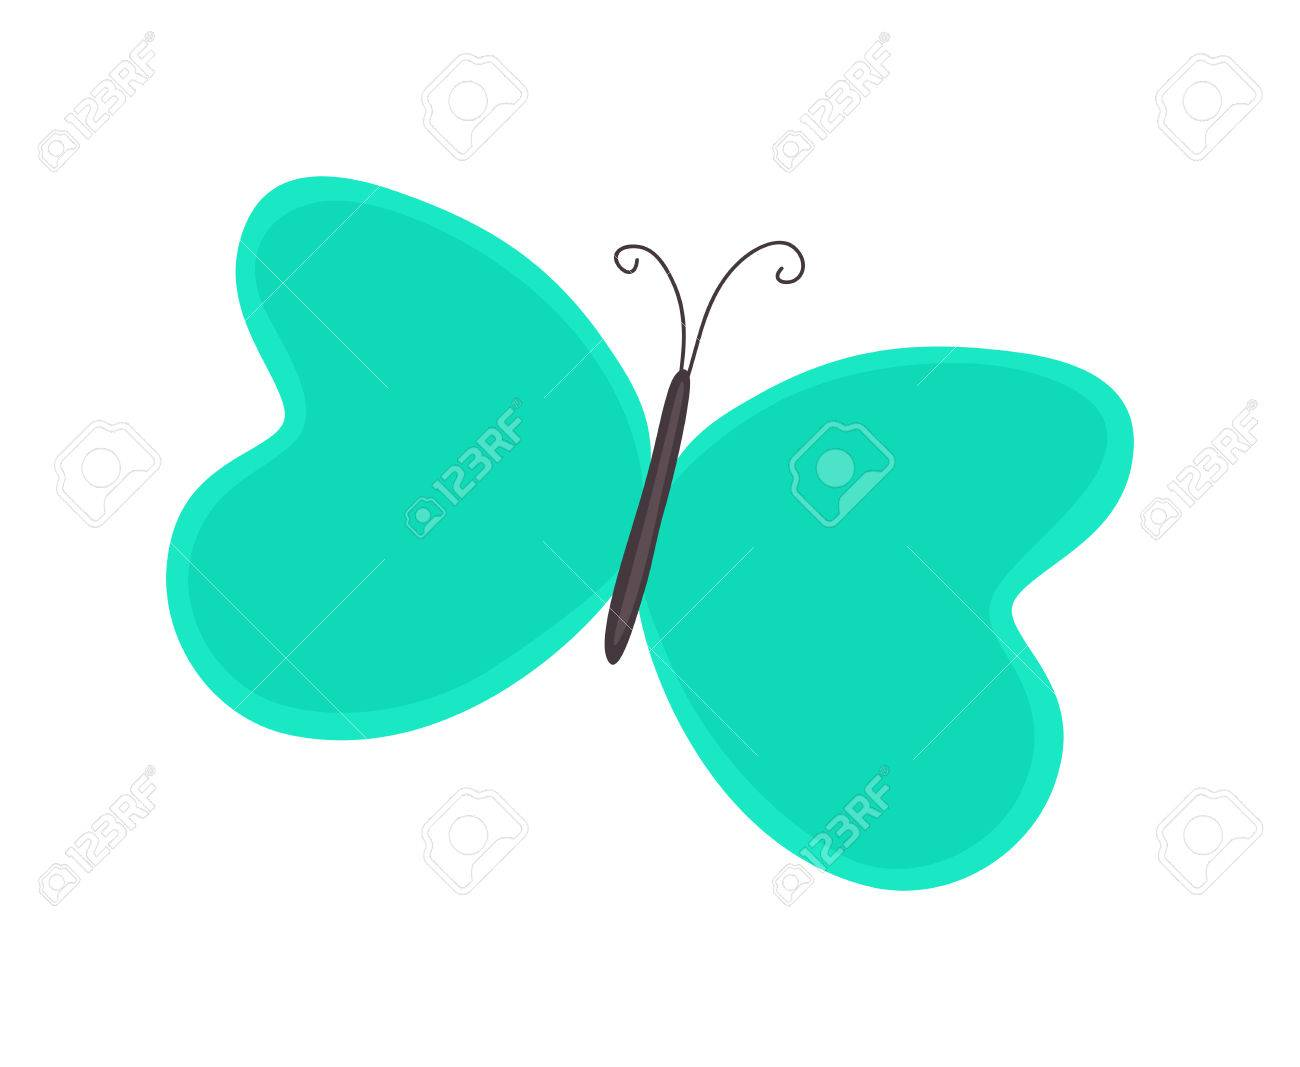 cartoon butterfly clipart royalty free cliparts vectors and stock rh 123rf com Butterfly Driving Car free cartoon butterfly clipart